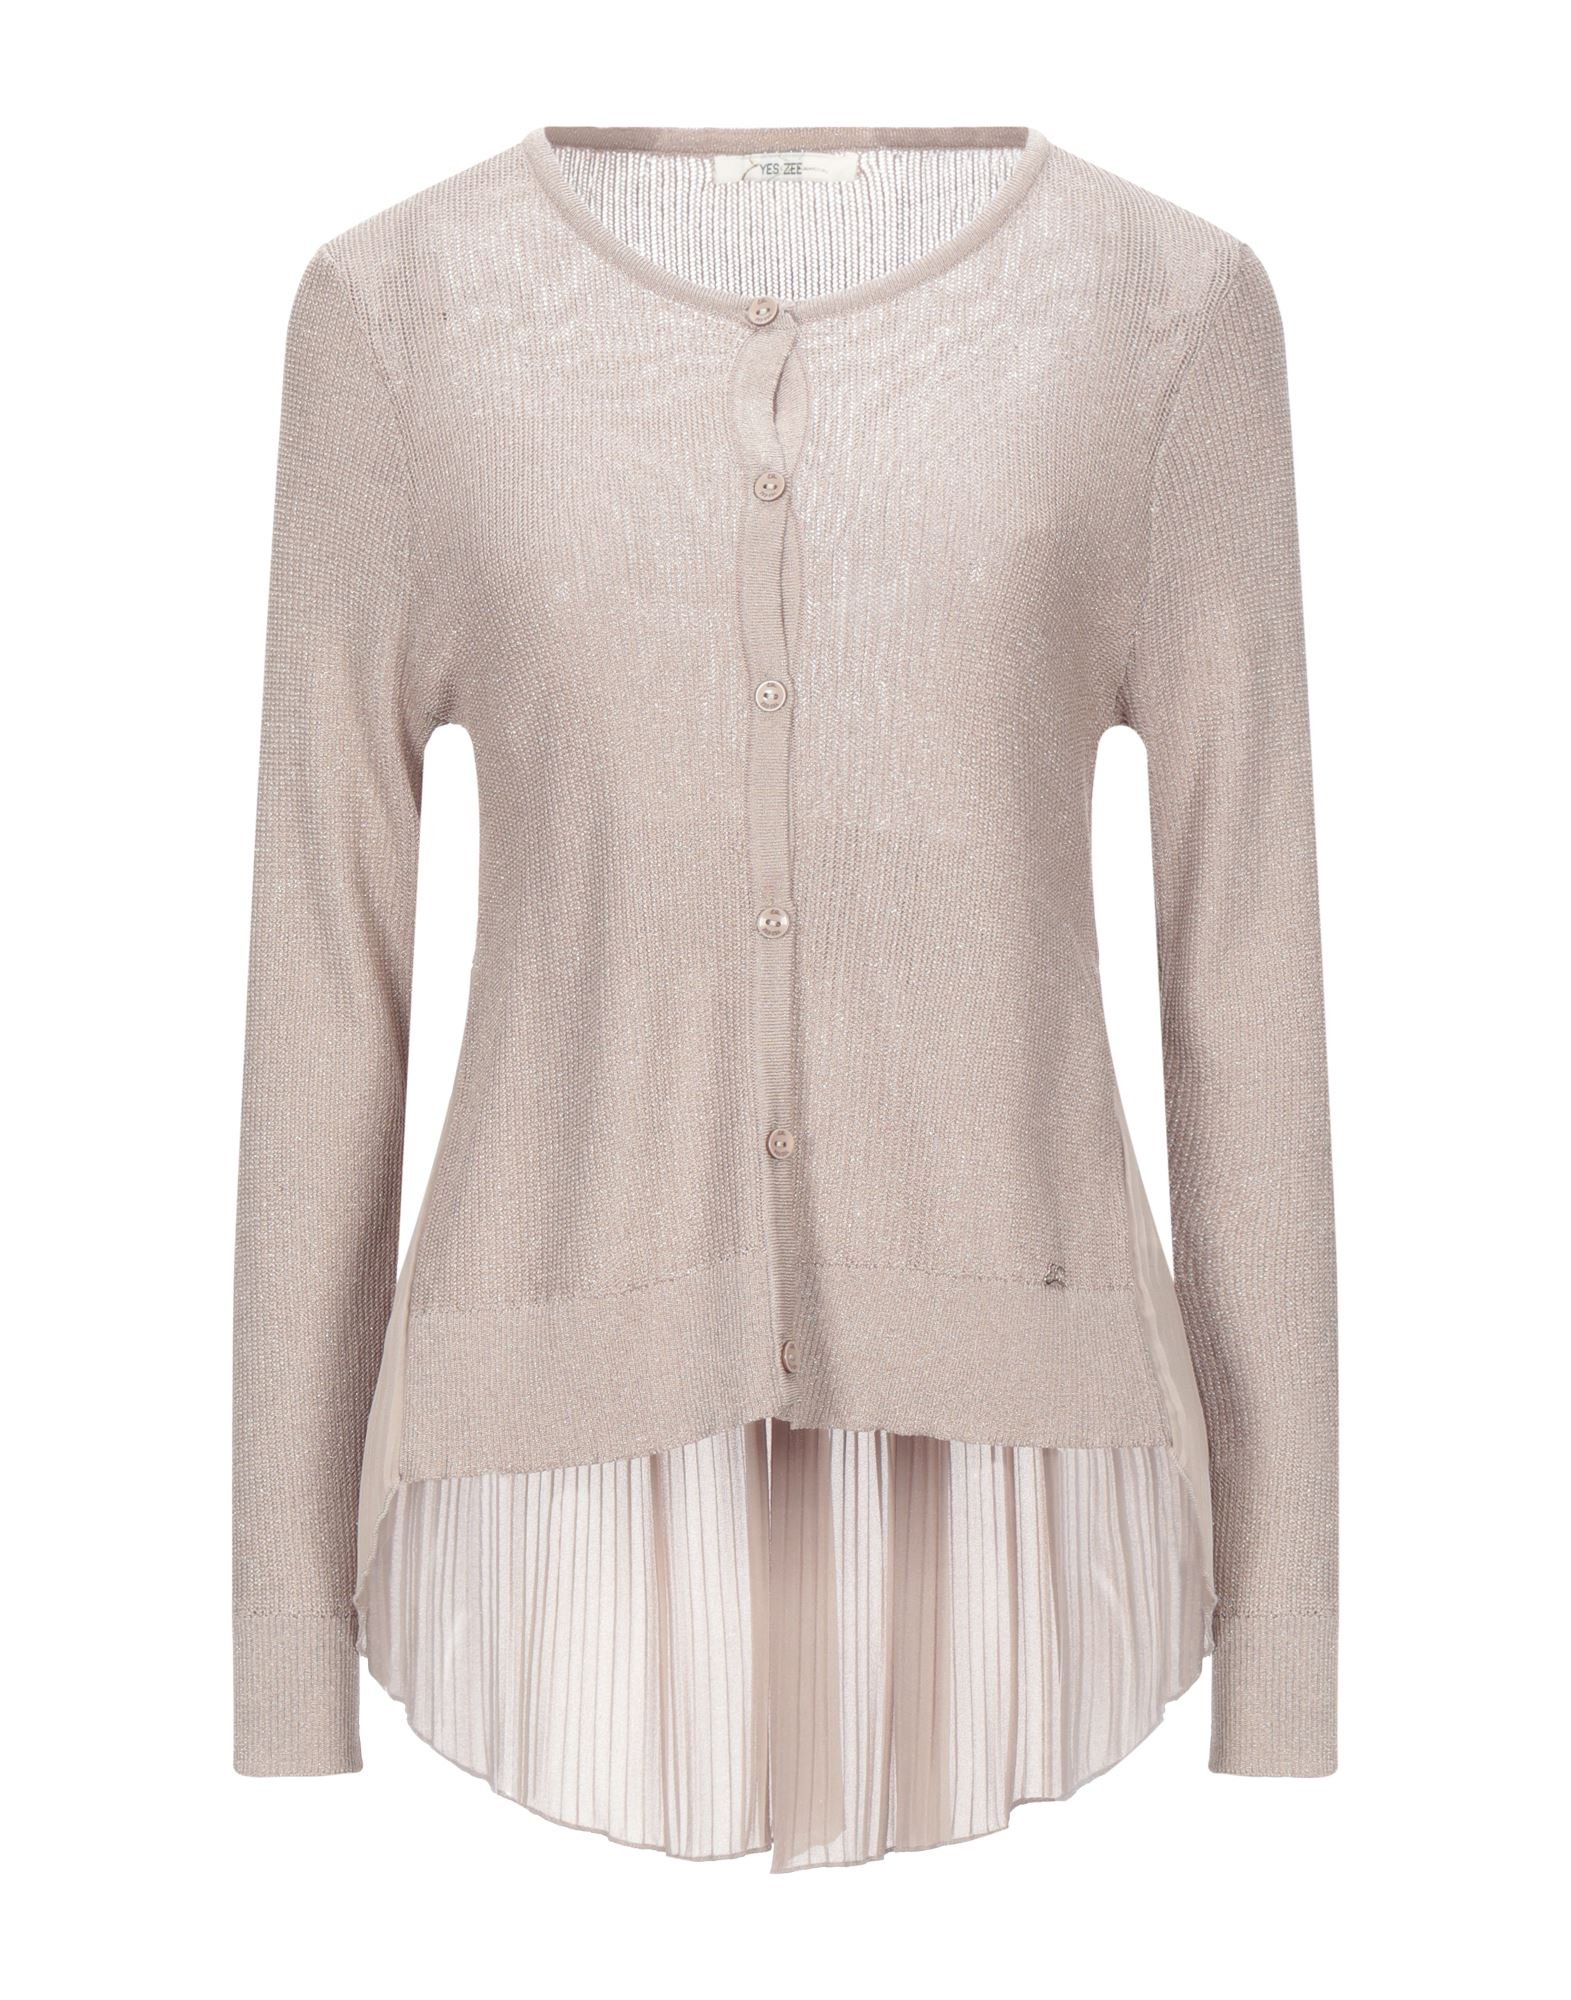 YES ZEE by ESSENZA Cardigans - Item 14099928